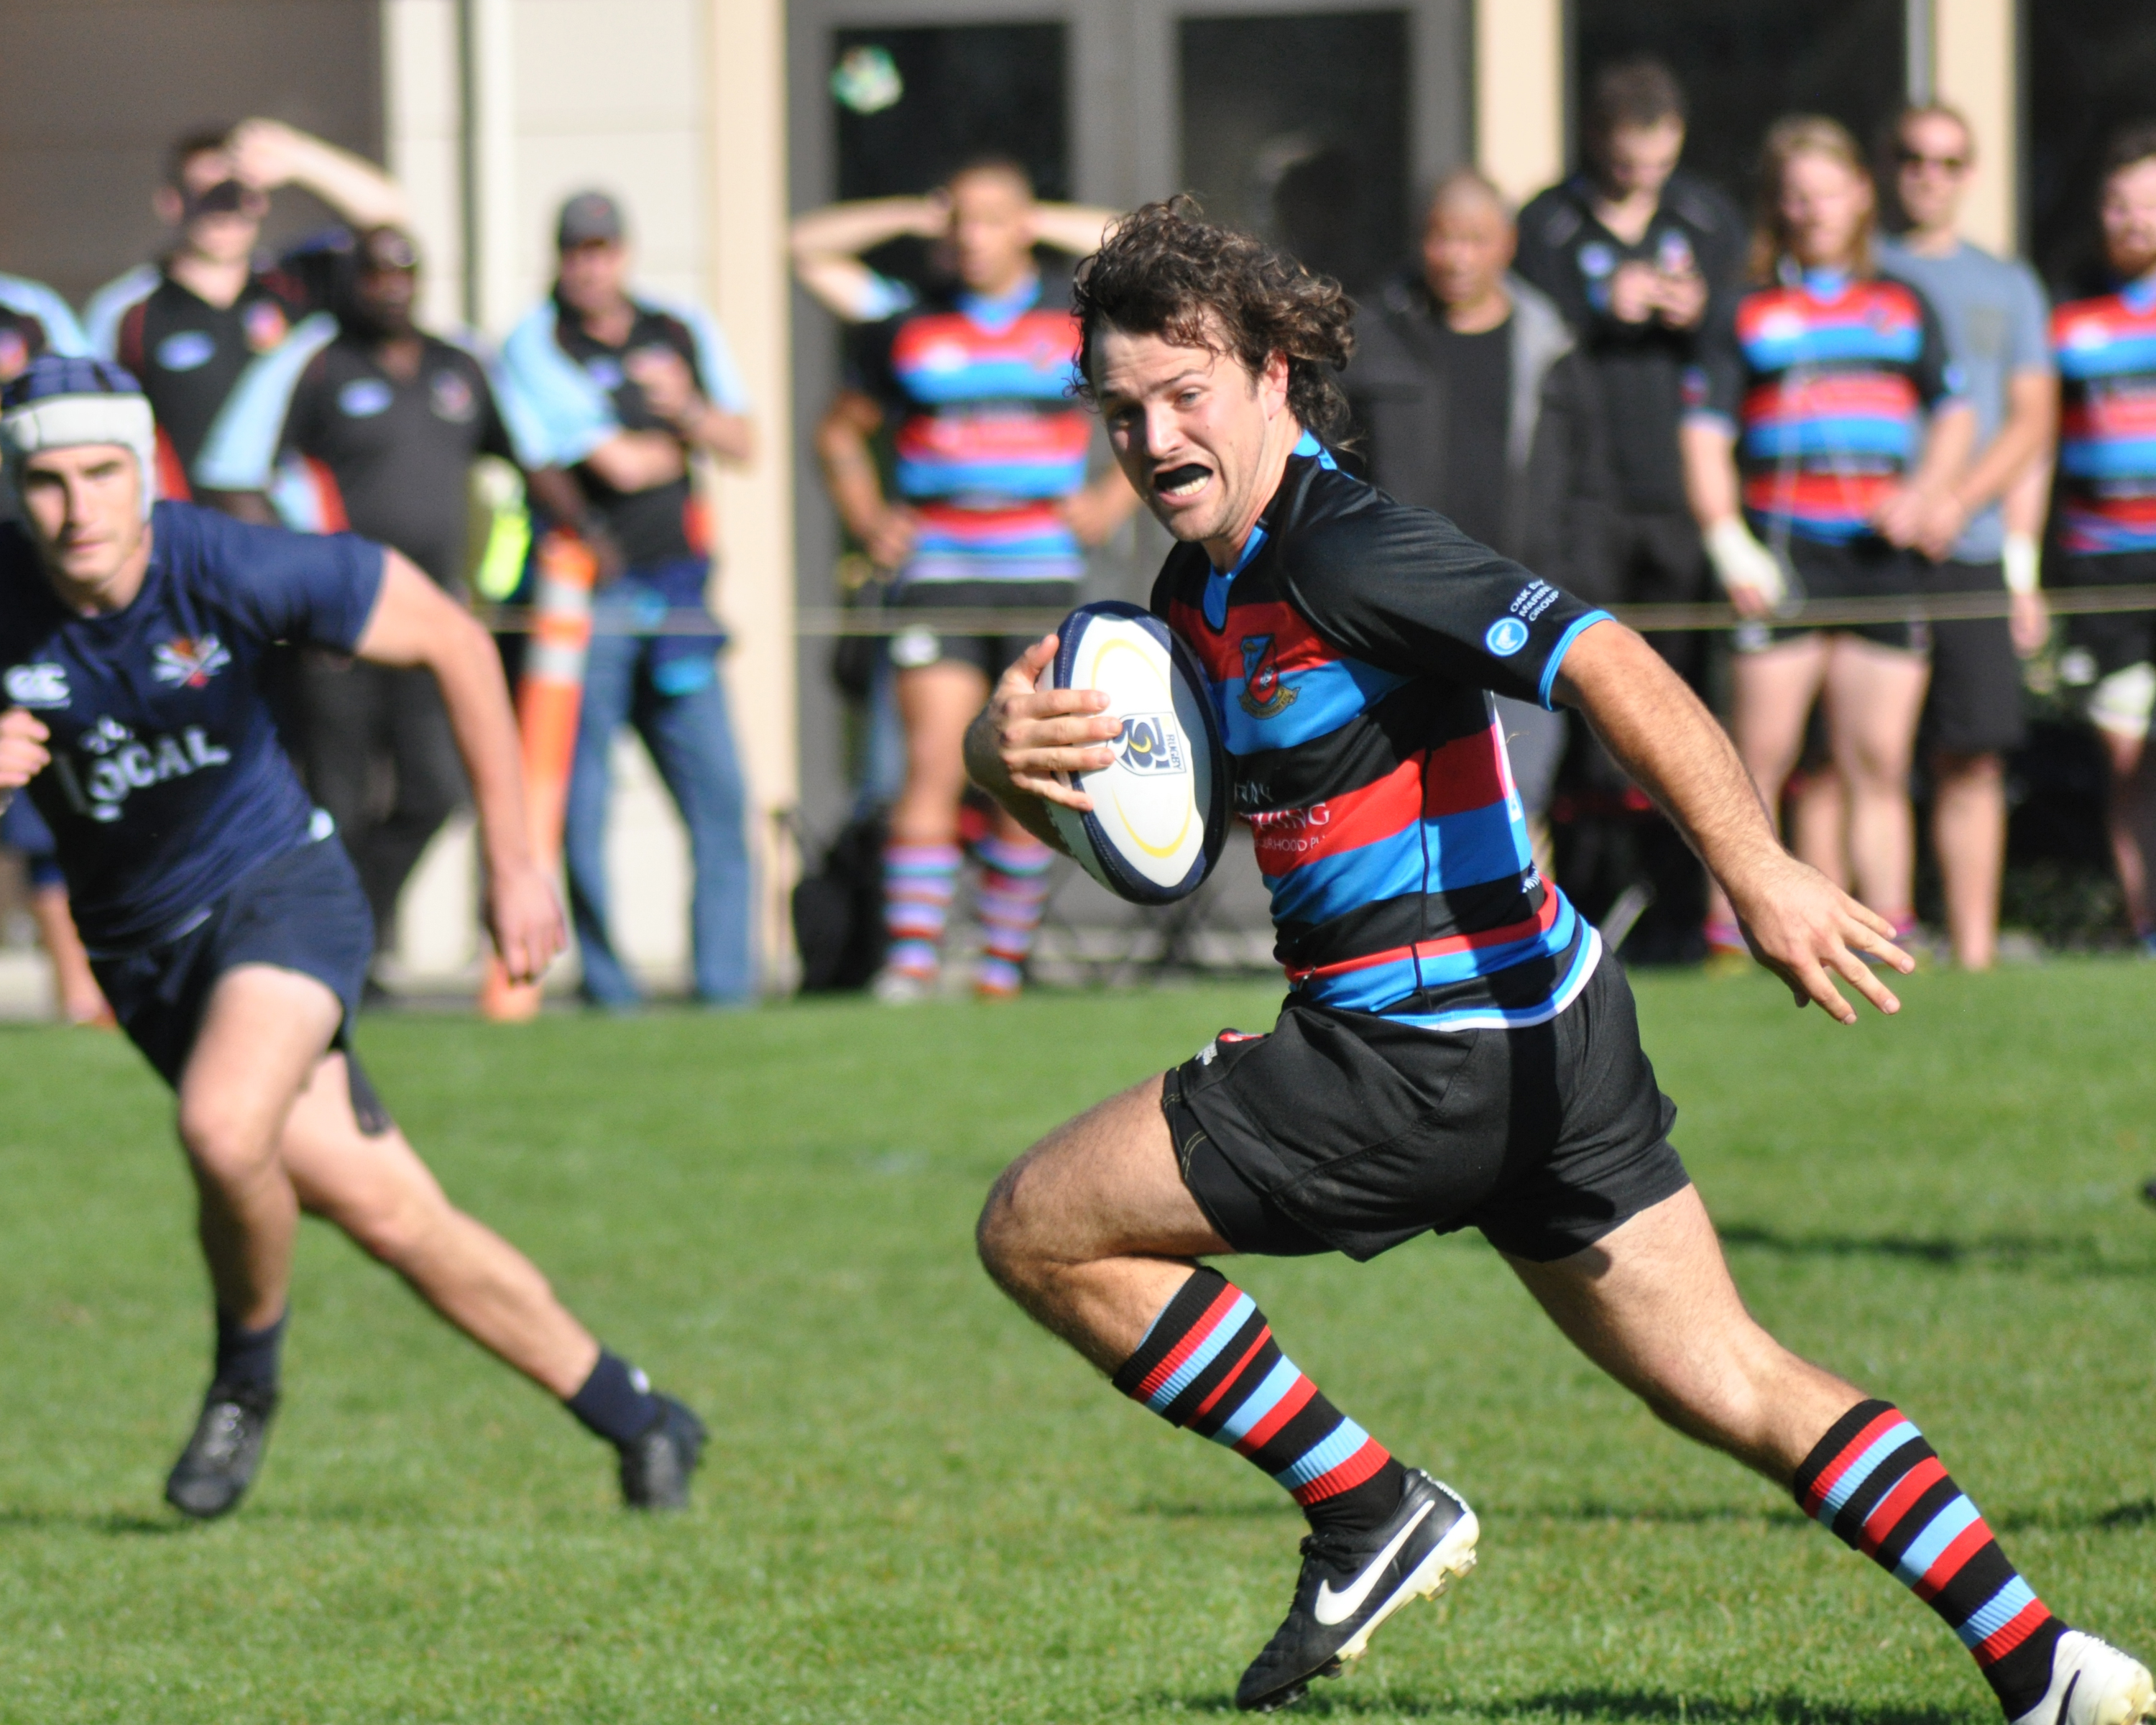 VIRU WOMEN'S FALL FINAL - Image 2